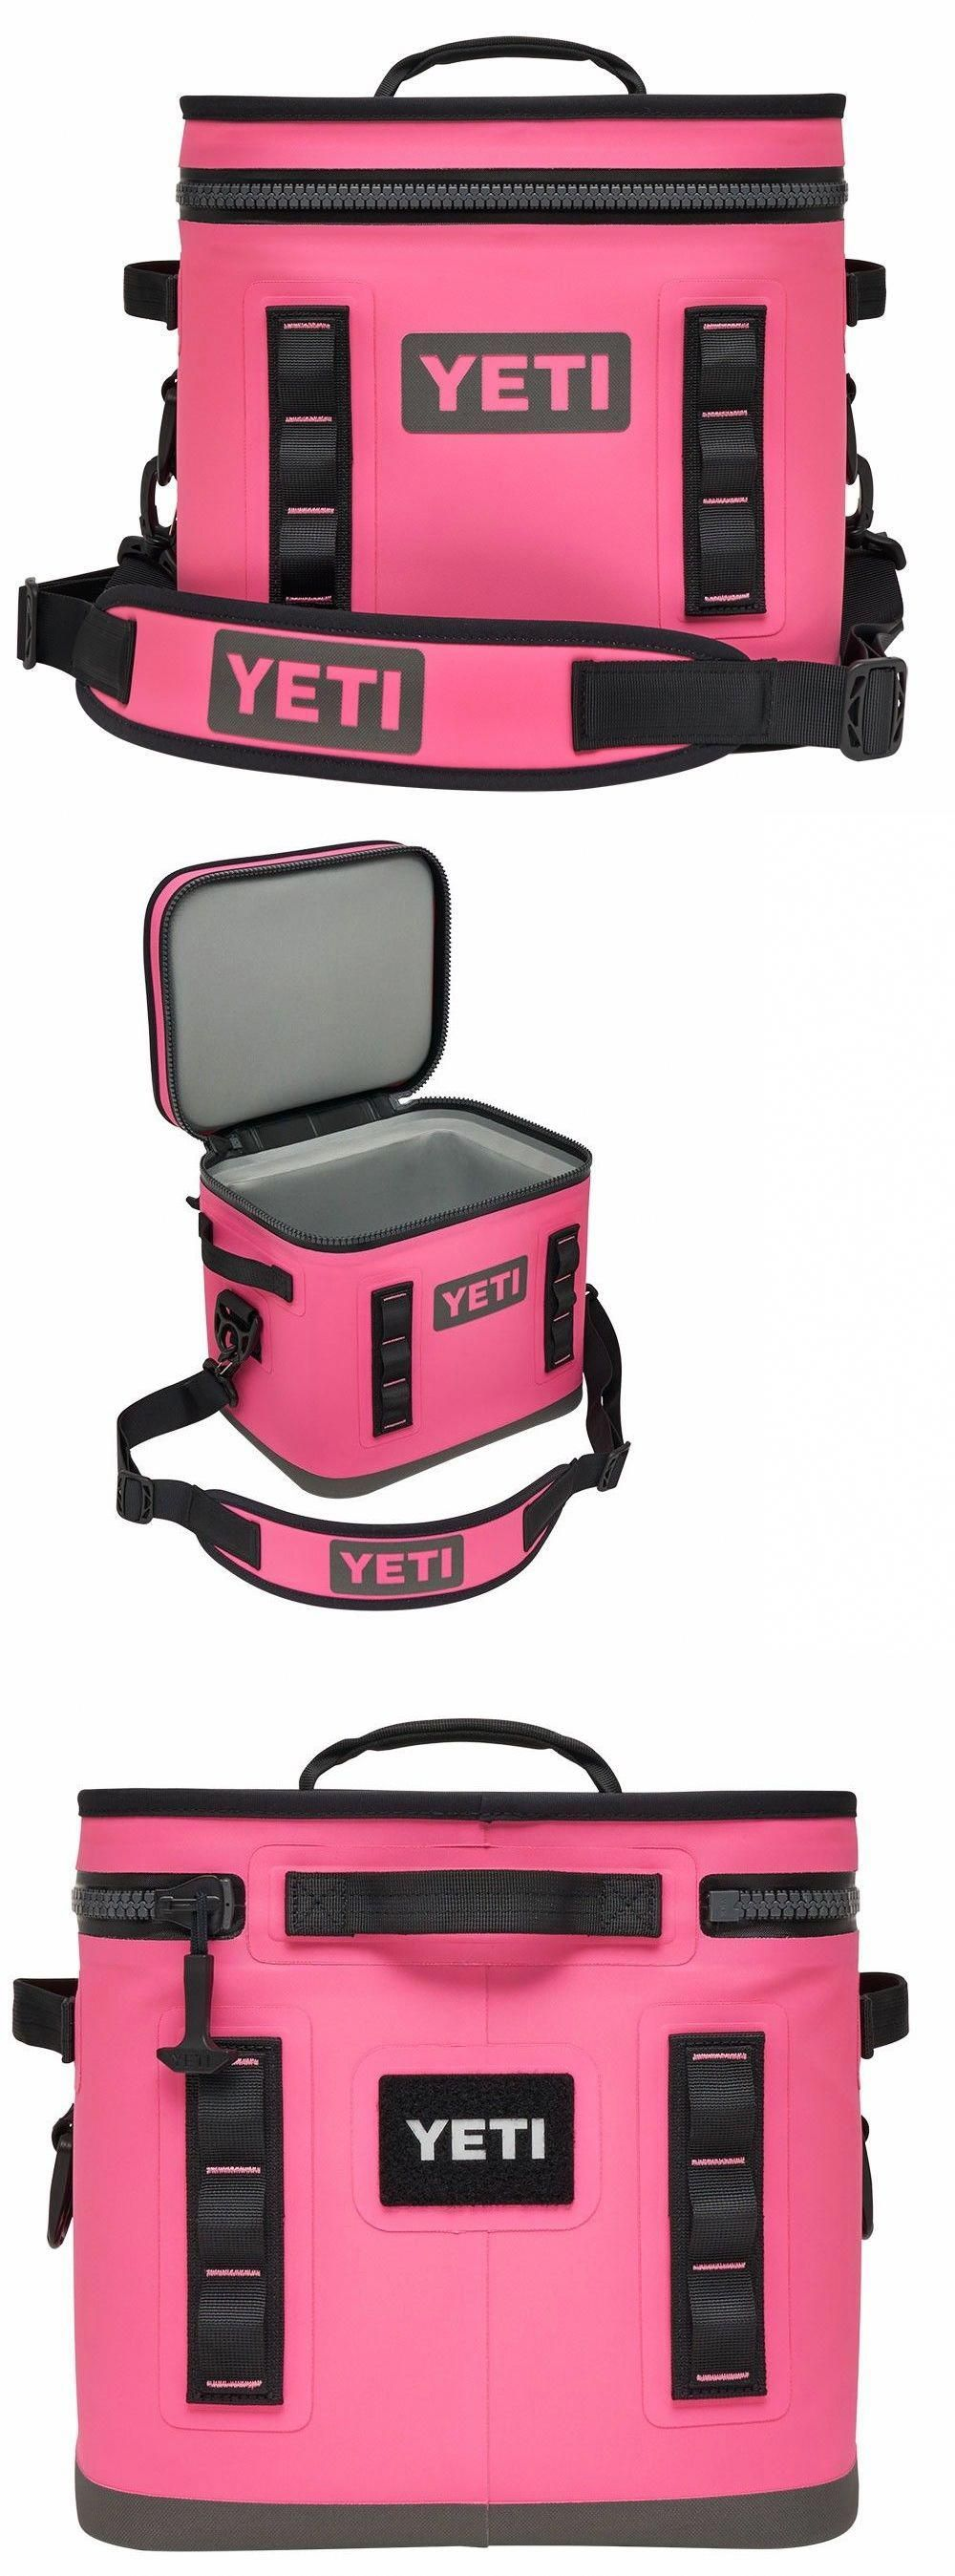 Camping Ice Boxes And Coolers 181382 Yeti Hopper Flip 12 Cooler With Tags Pink Buy It Now Only 499 99 On Ebay Camping In 2020 Pink Yeti Pink Yeti Cooler Yeti